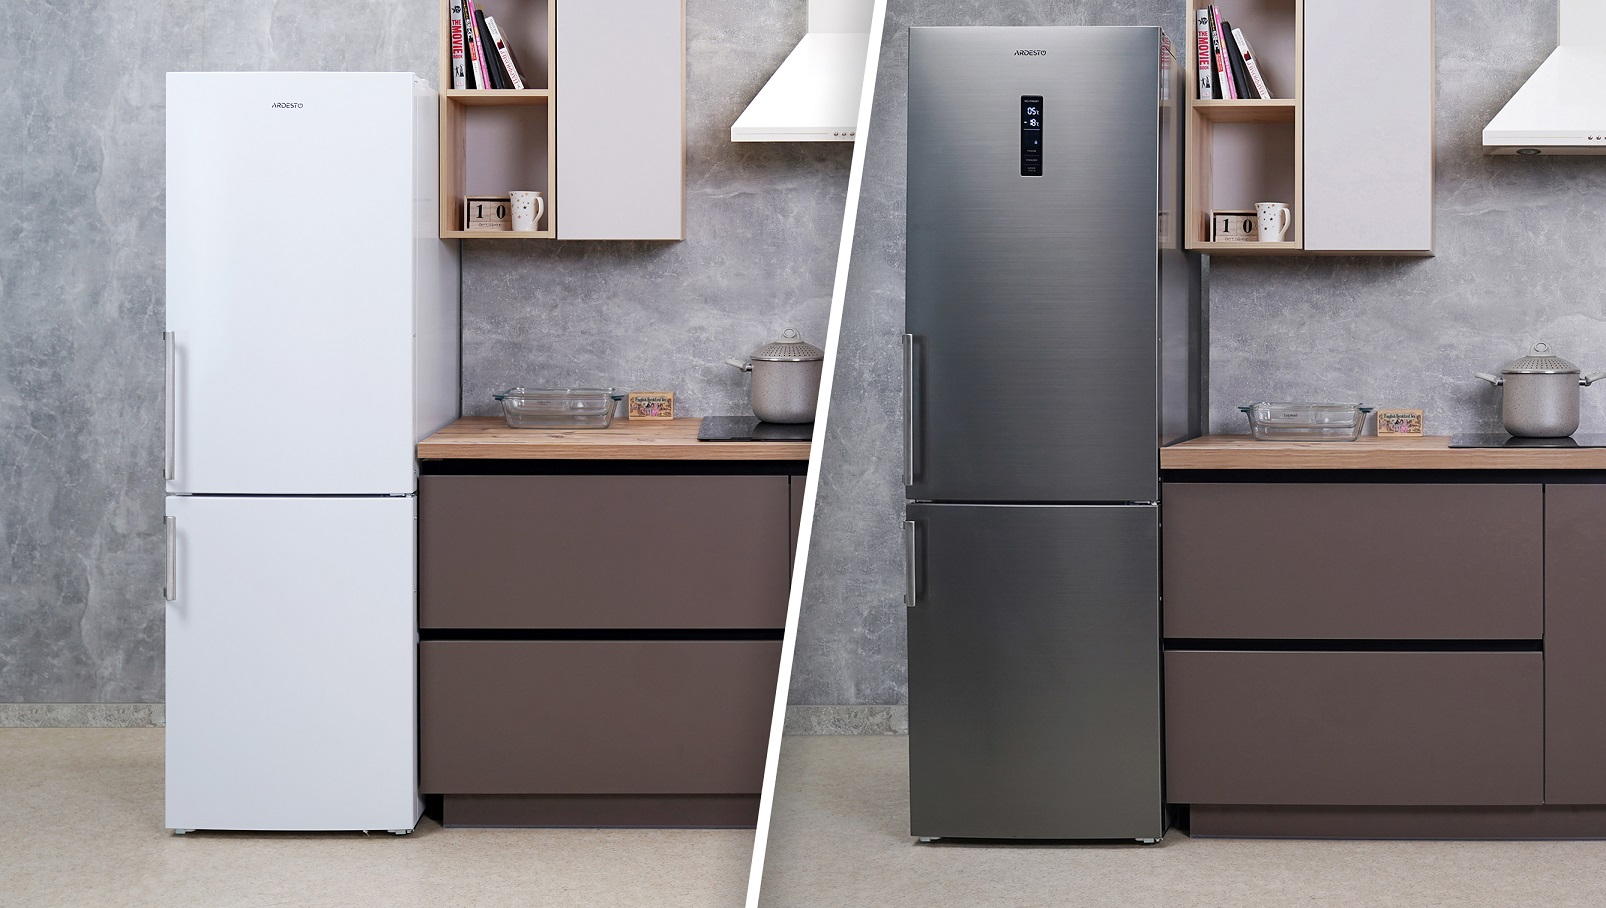 New Ardesto refrigerators with No Frost Cooling